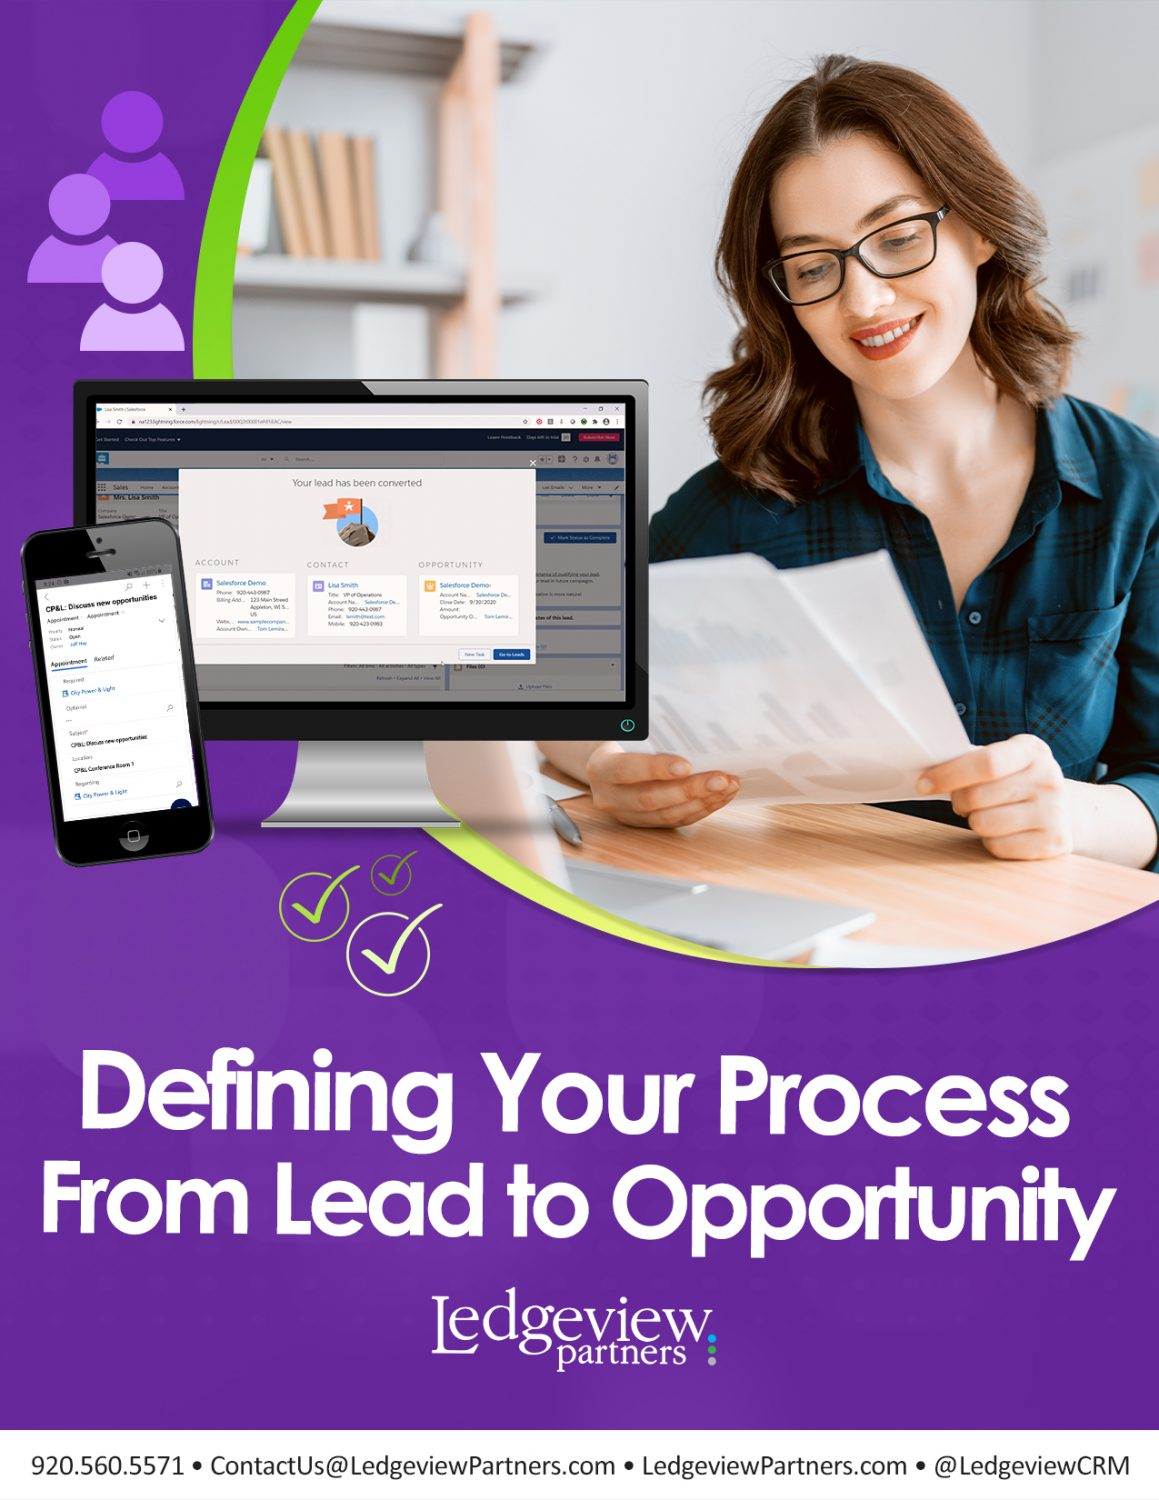 Defining Your Process from Lead to Opportunity